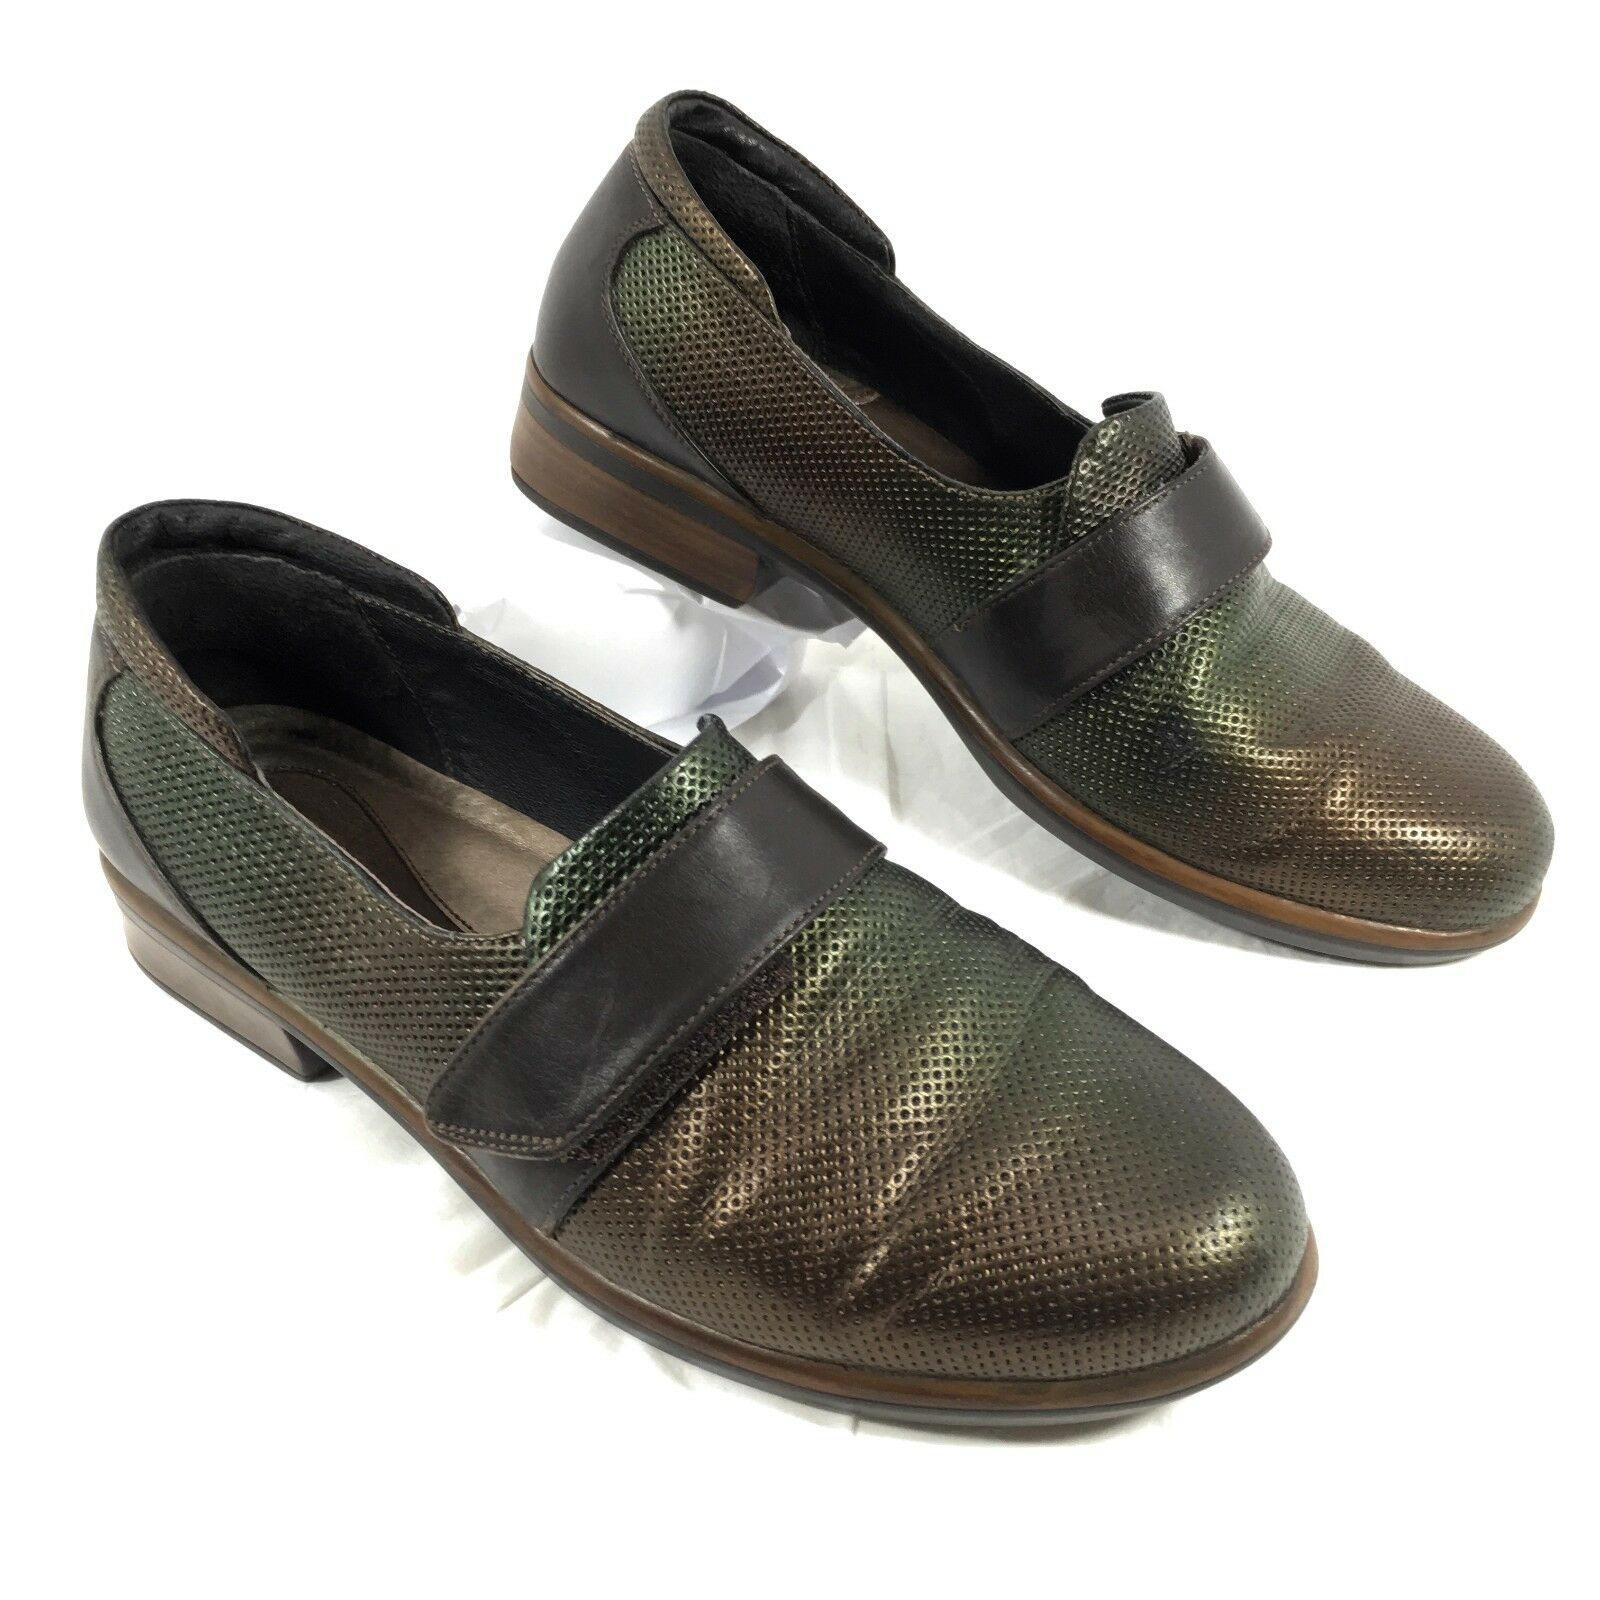 edizione limitata Naot Wind Wind Wind in Rattlesnake Loafers Marrone verde Leather Sz 8  nuovo stile